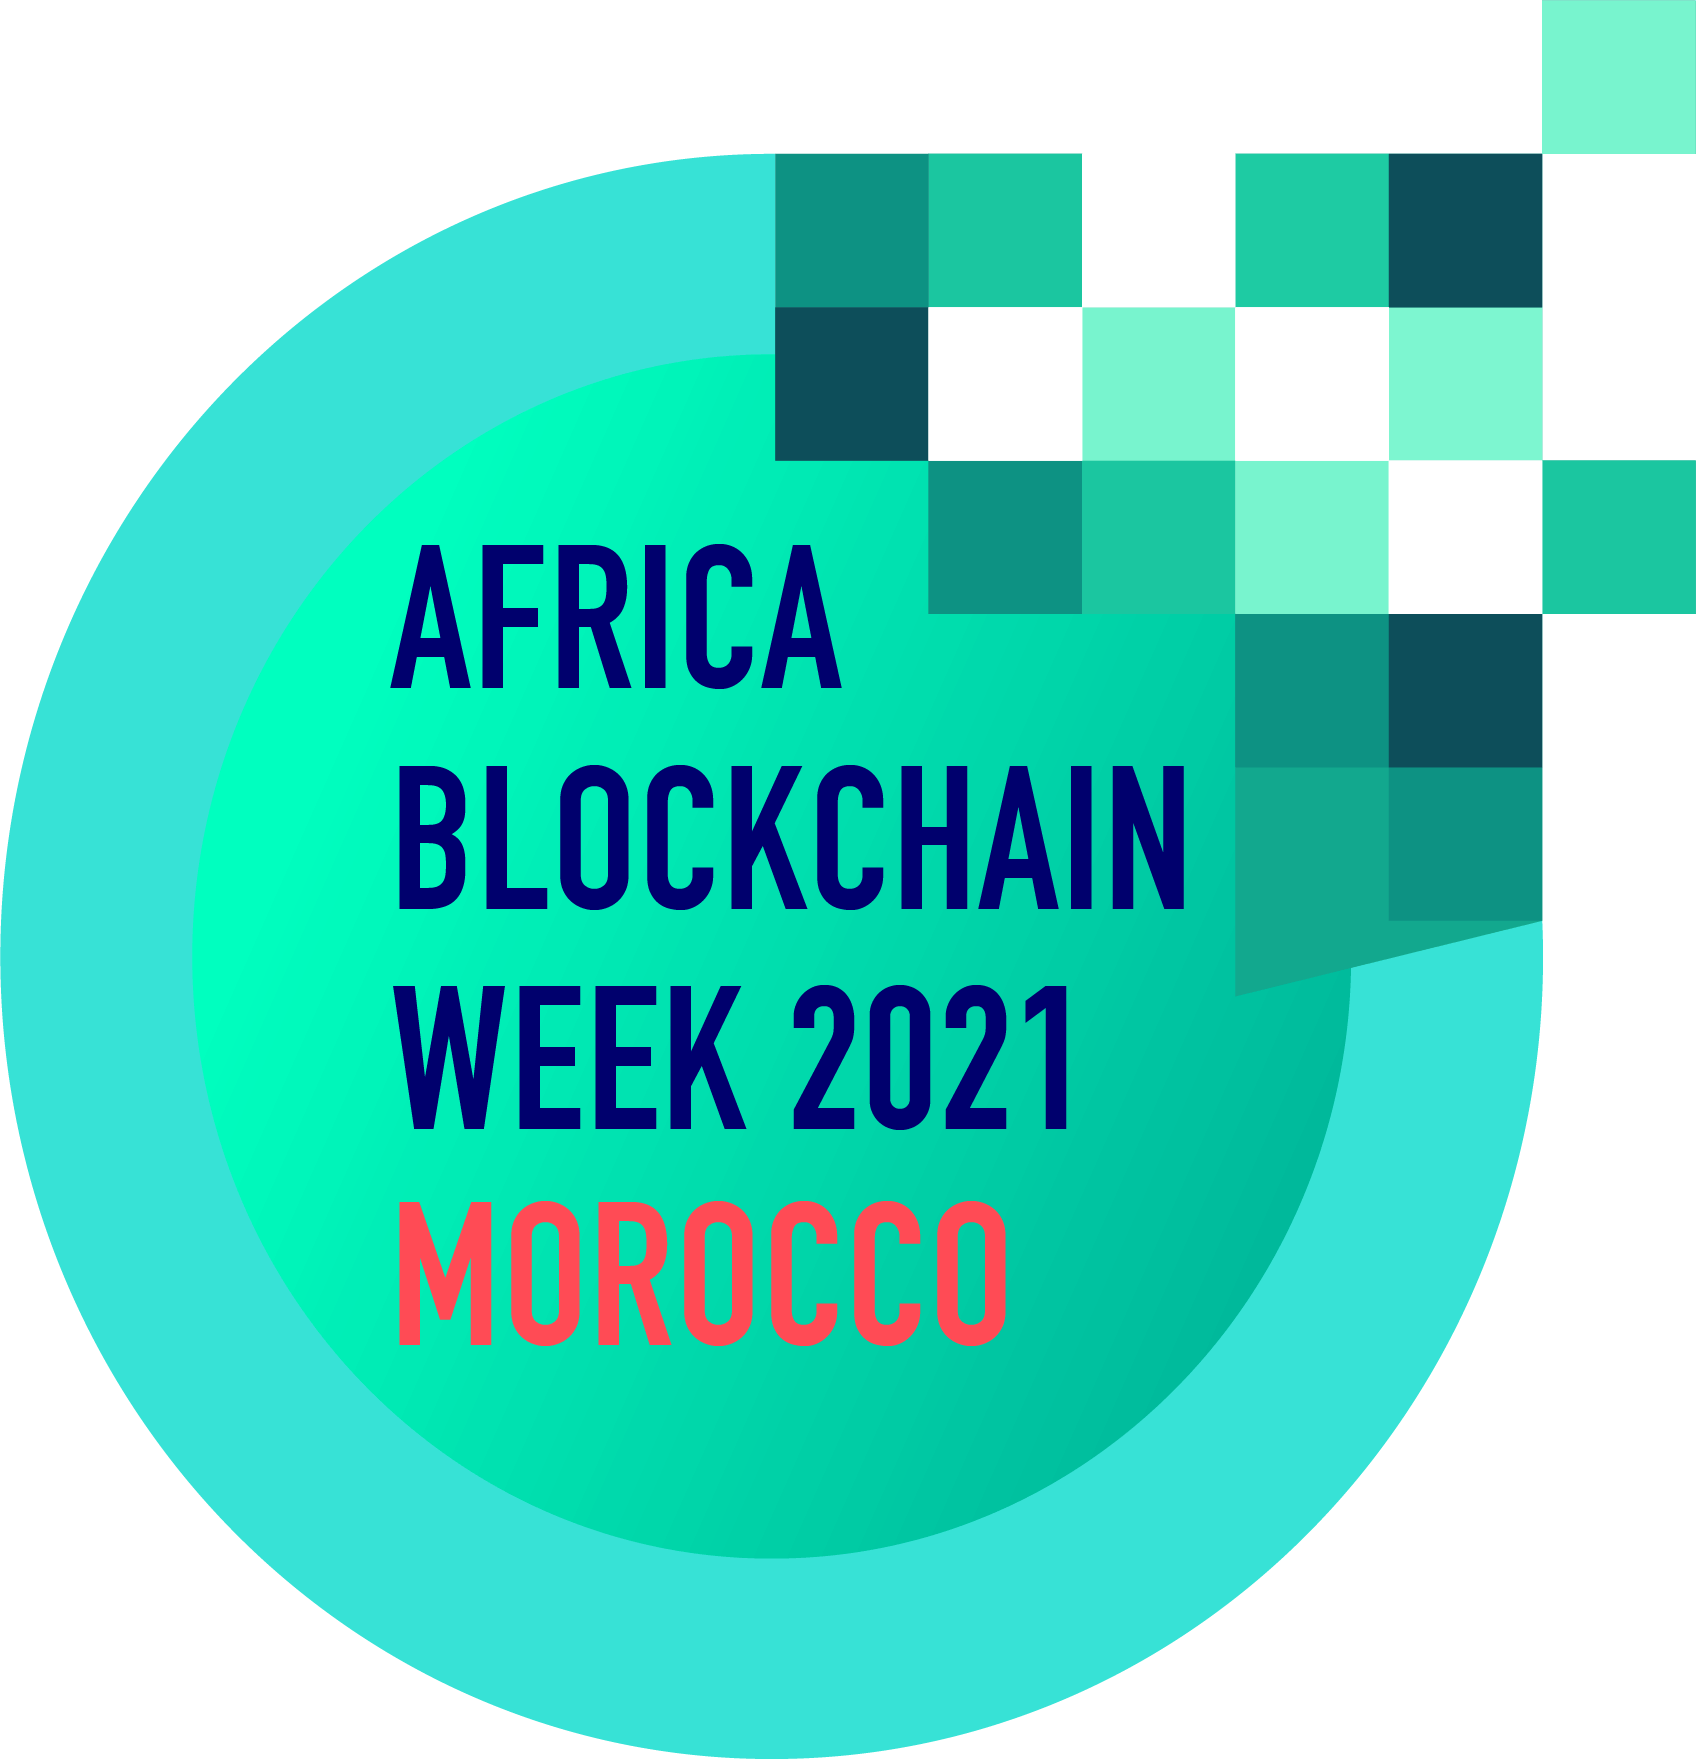 Africa Blockchain Week 2021